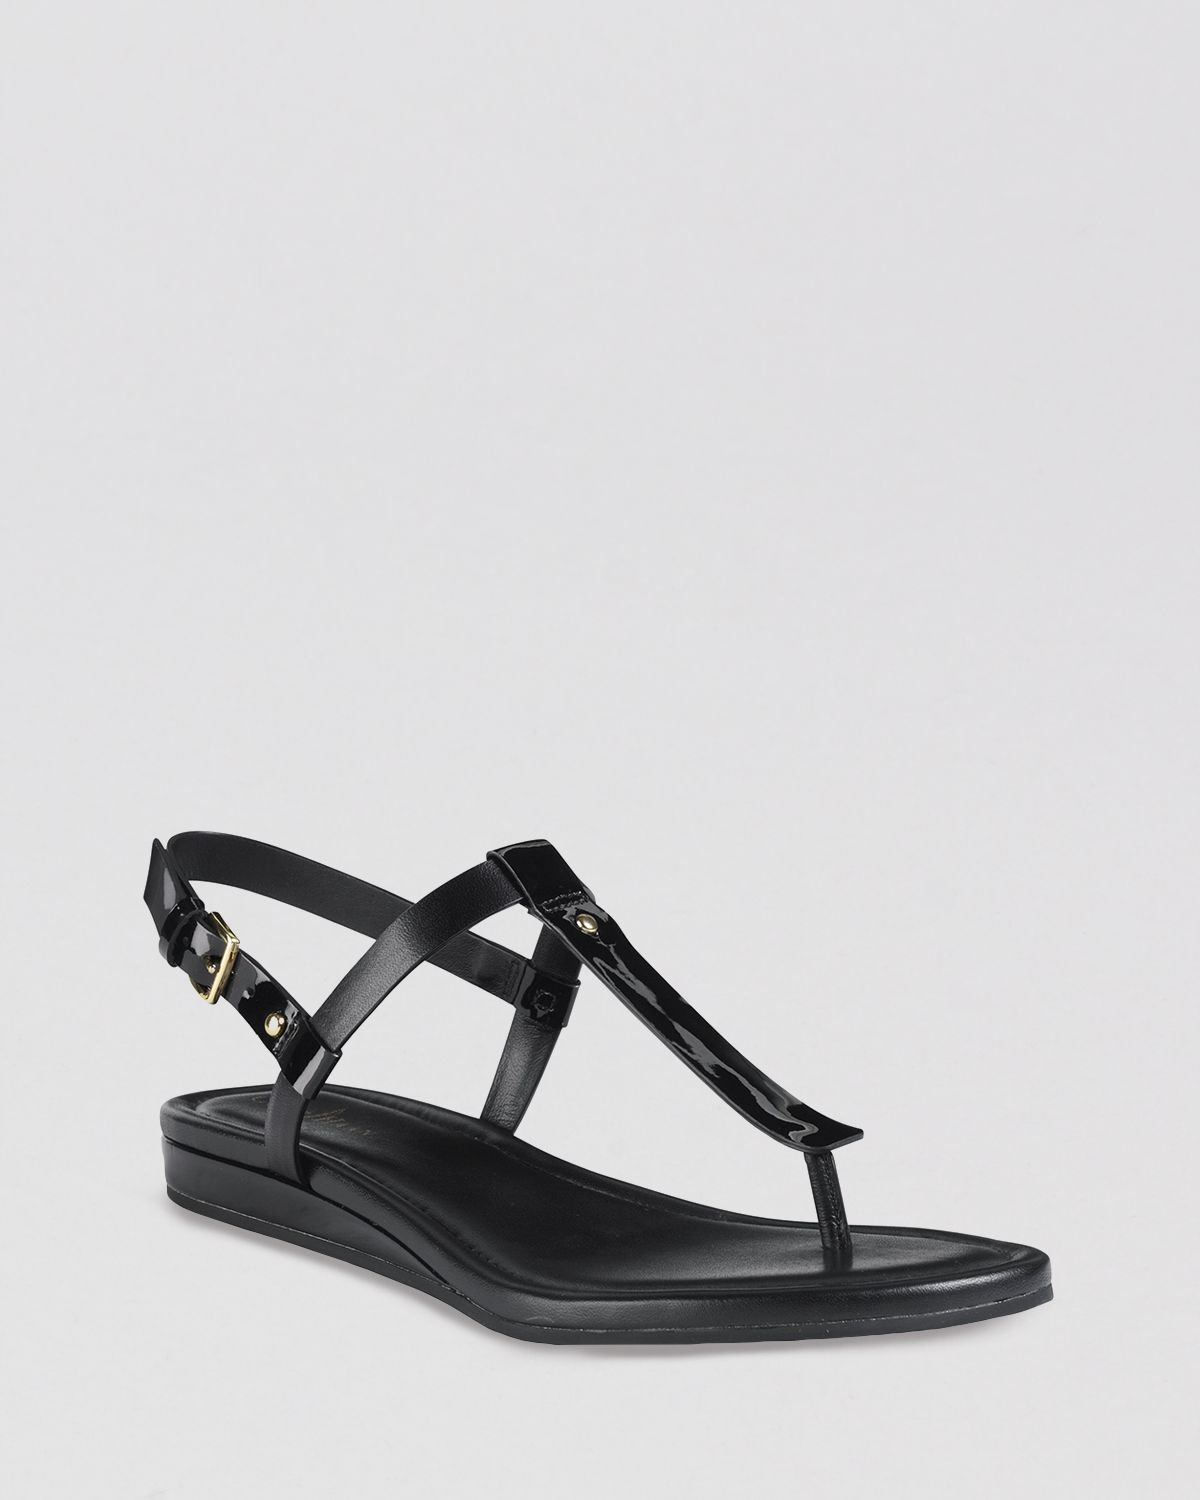 3544e132706 Lyst - Cole Haan Flat Thong Sandals Boardwalk in Black